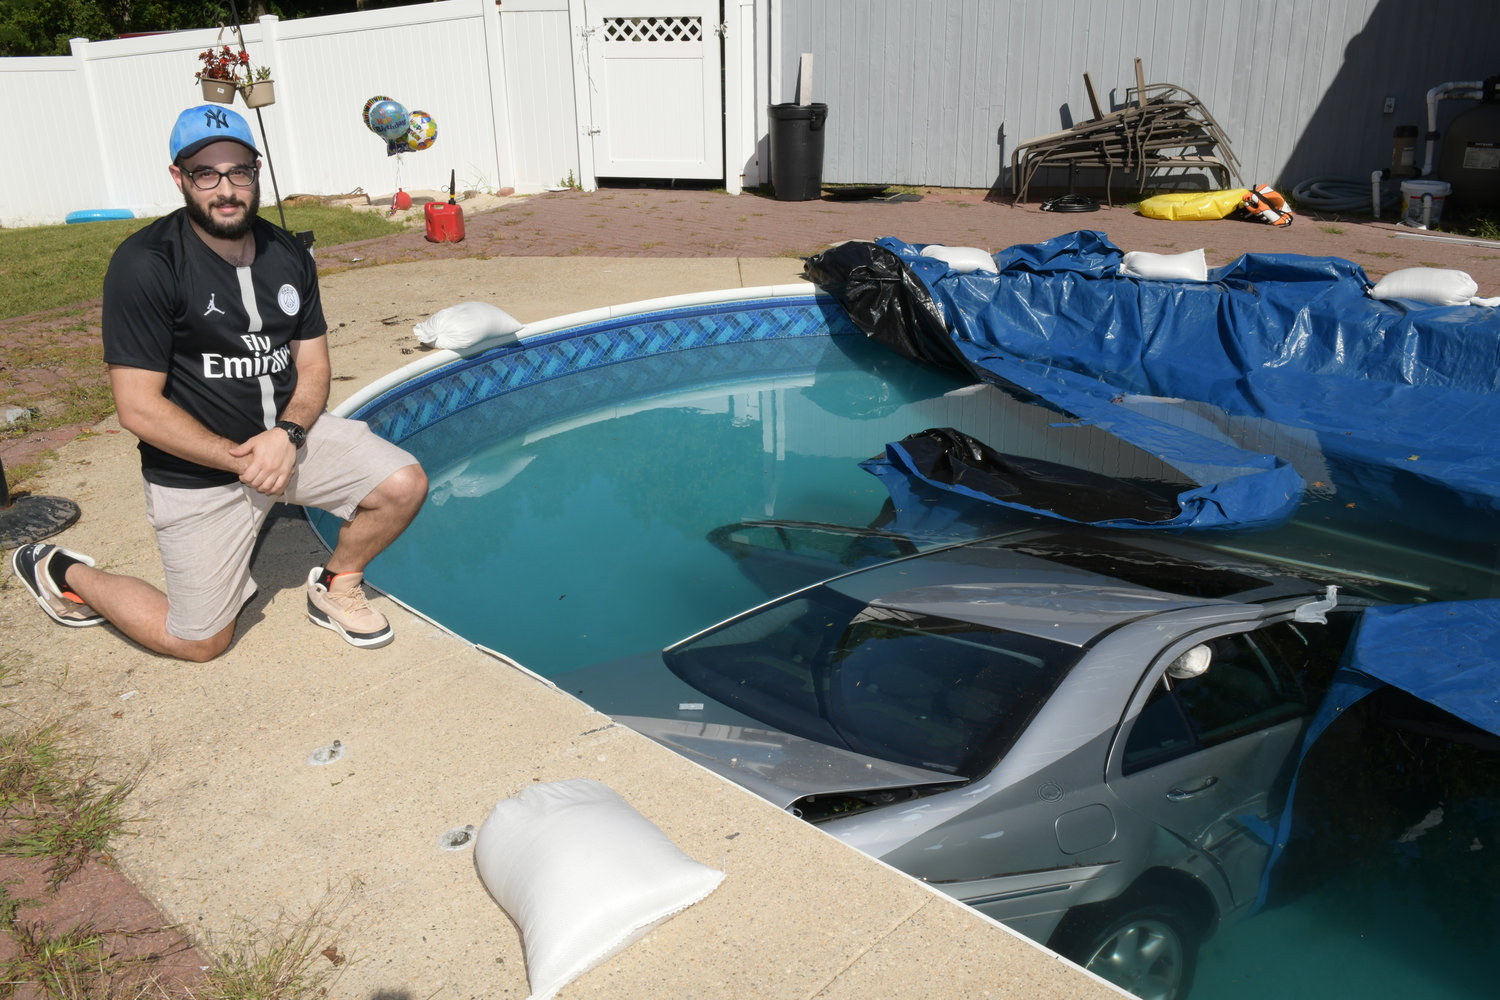 Christian Floro dove into the pool to rescue a 73-year-old woman trapped inside her car.